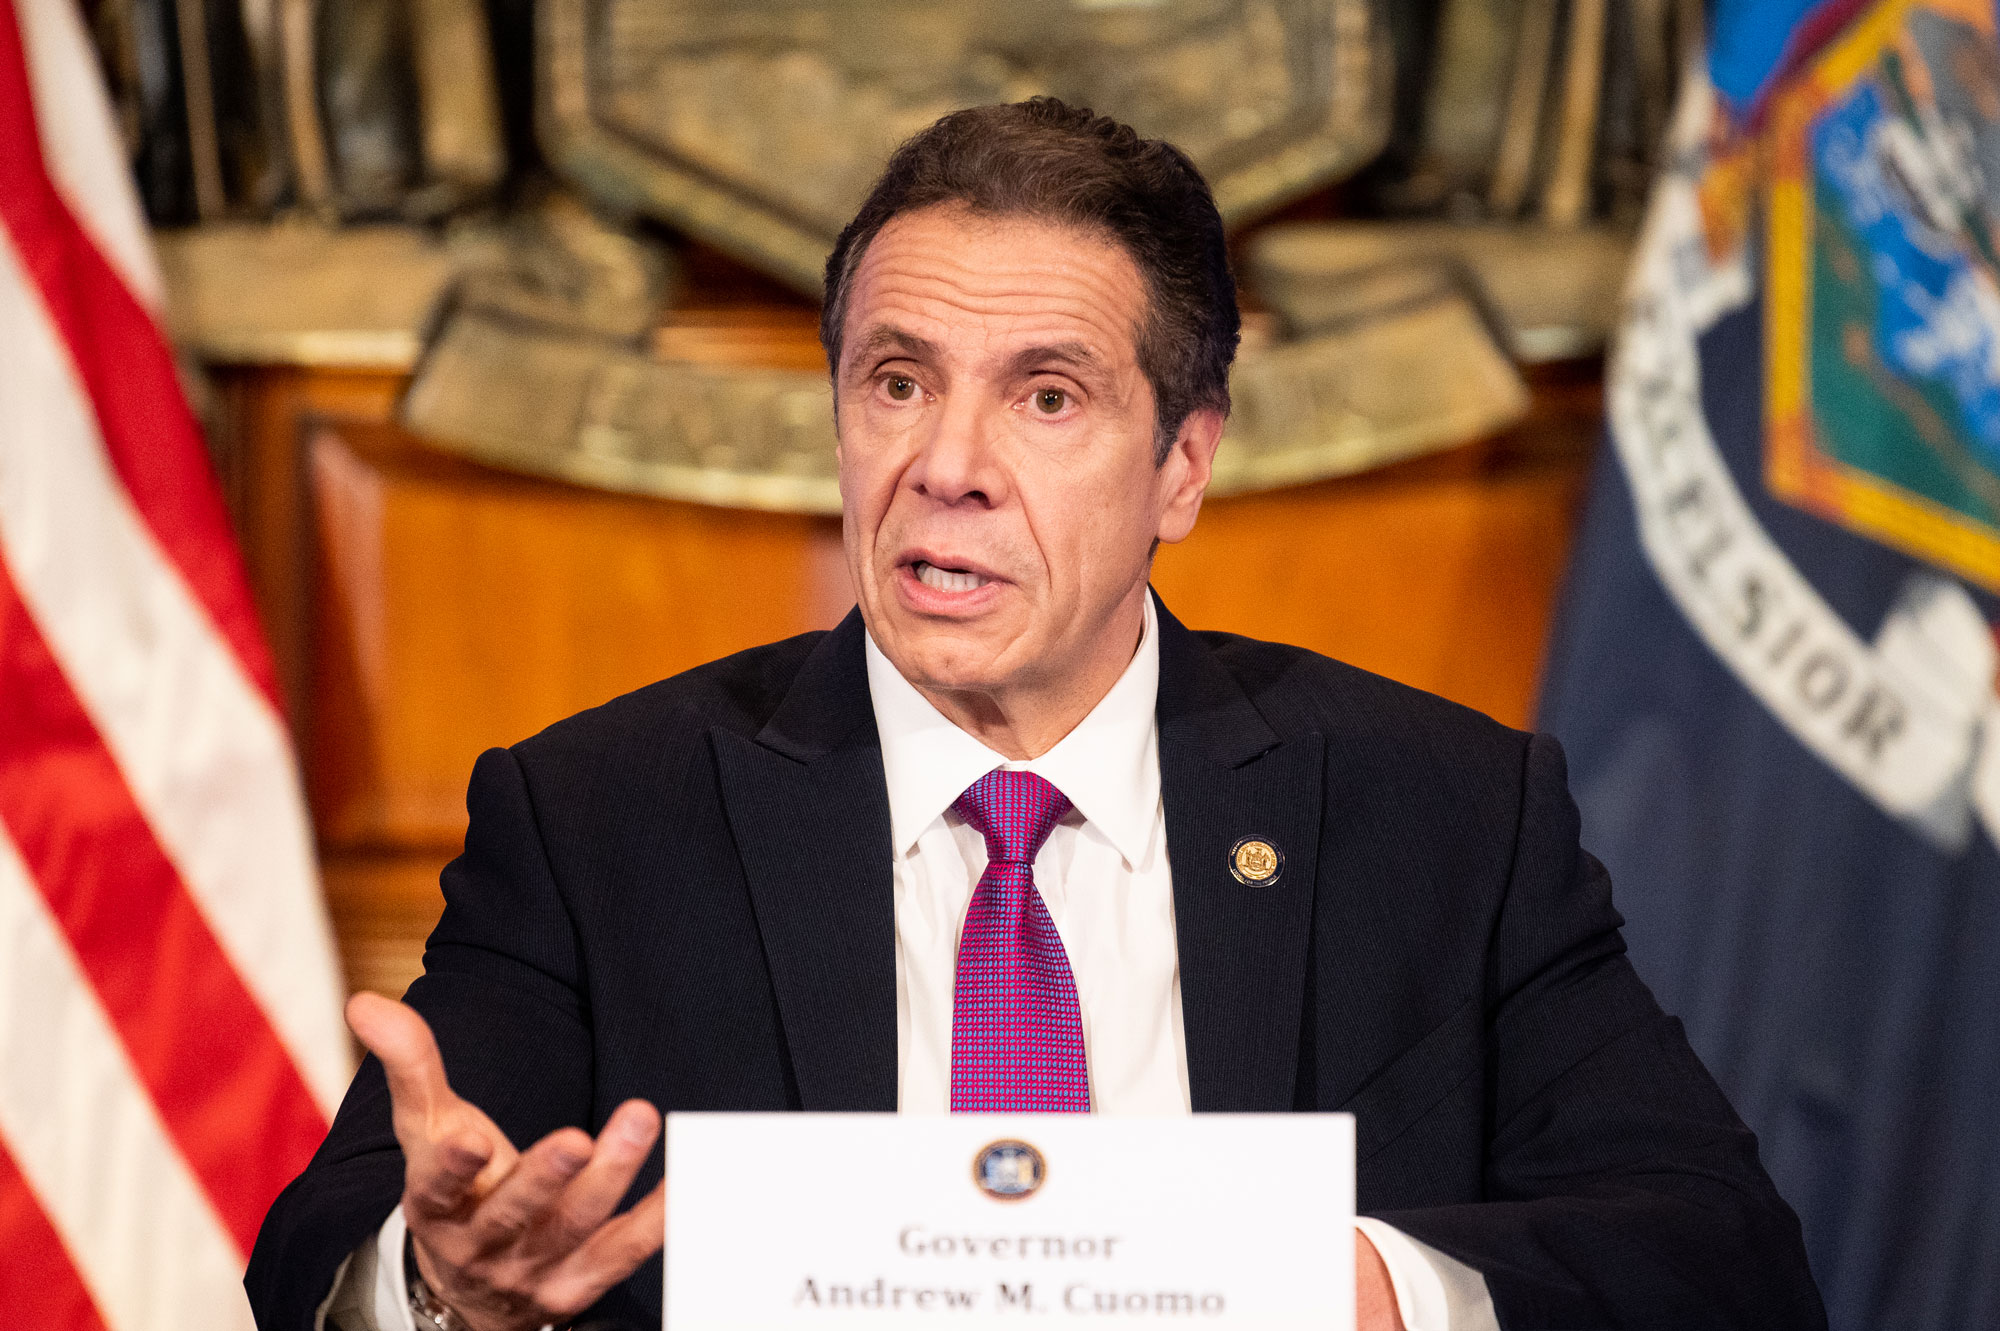 New York Governor Andrew Cuomo speaks during a press conference at the State Capitol in Albany, New York.